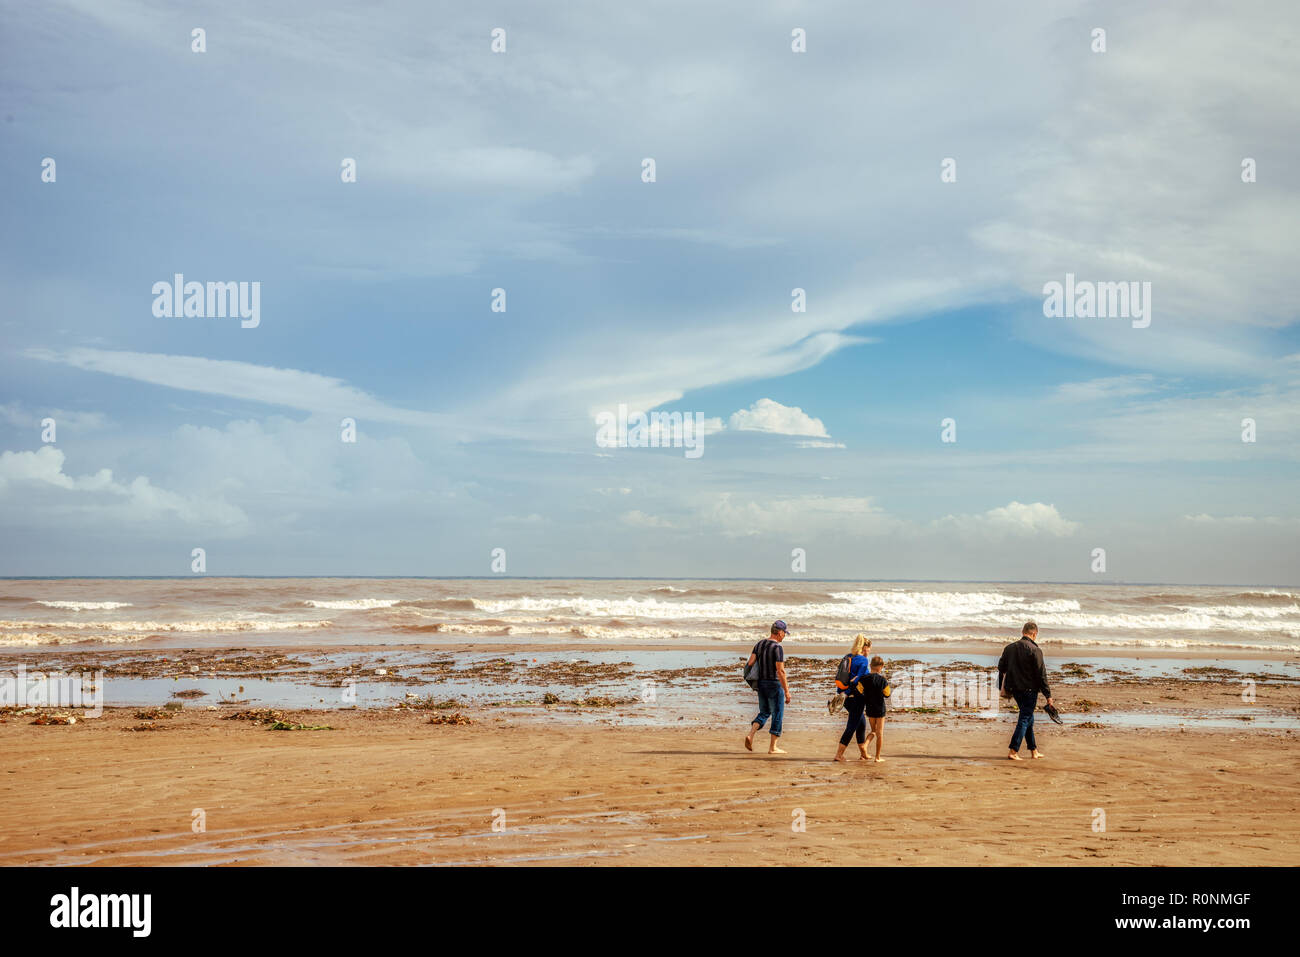 An unidentifiable family walking along a littered beach after a storm with white clouds, a blue sky, brown sand, and many waves crashing on the shore - Stock Image